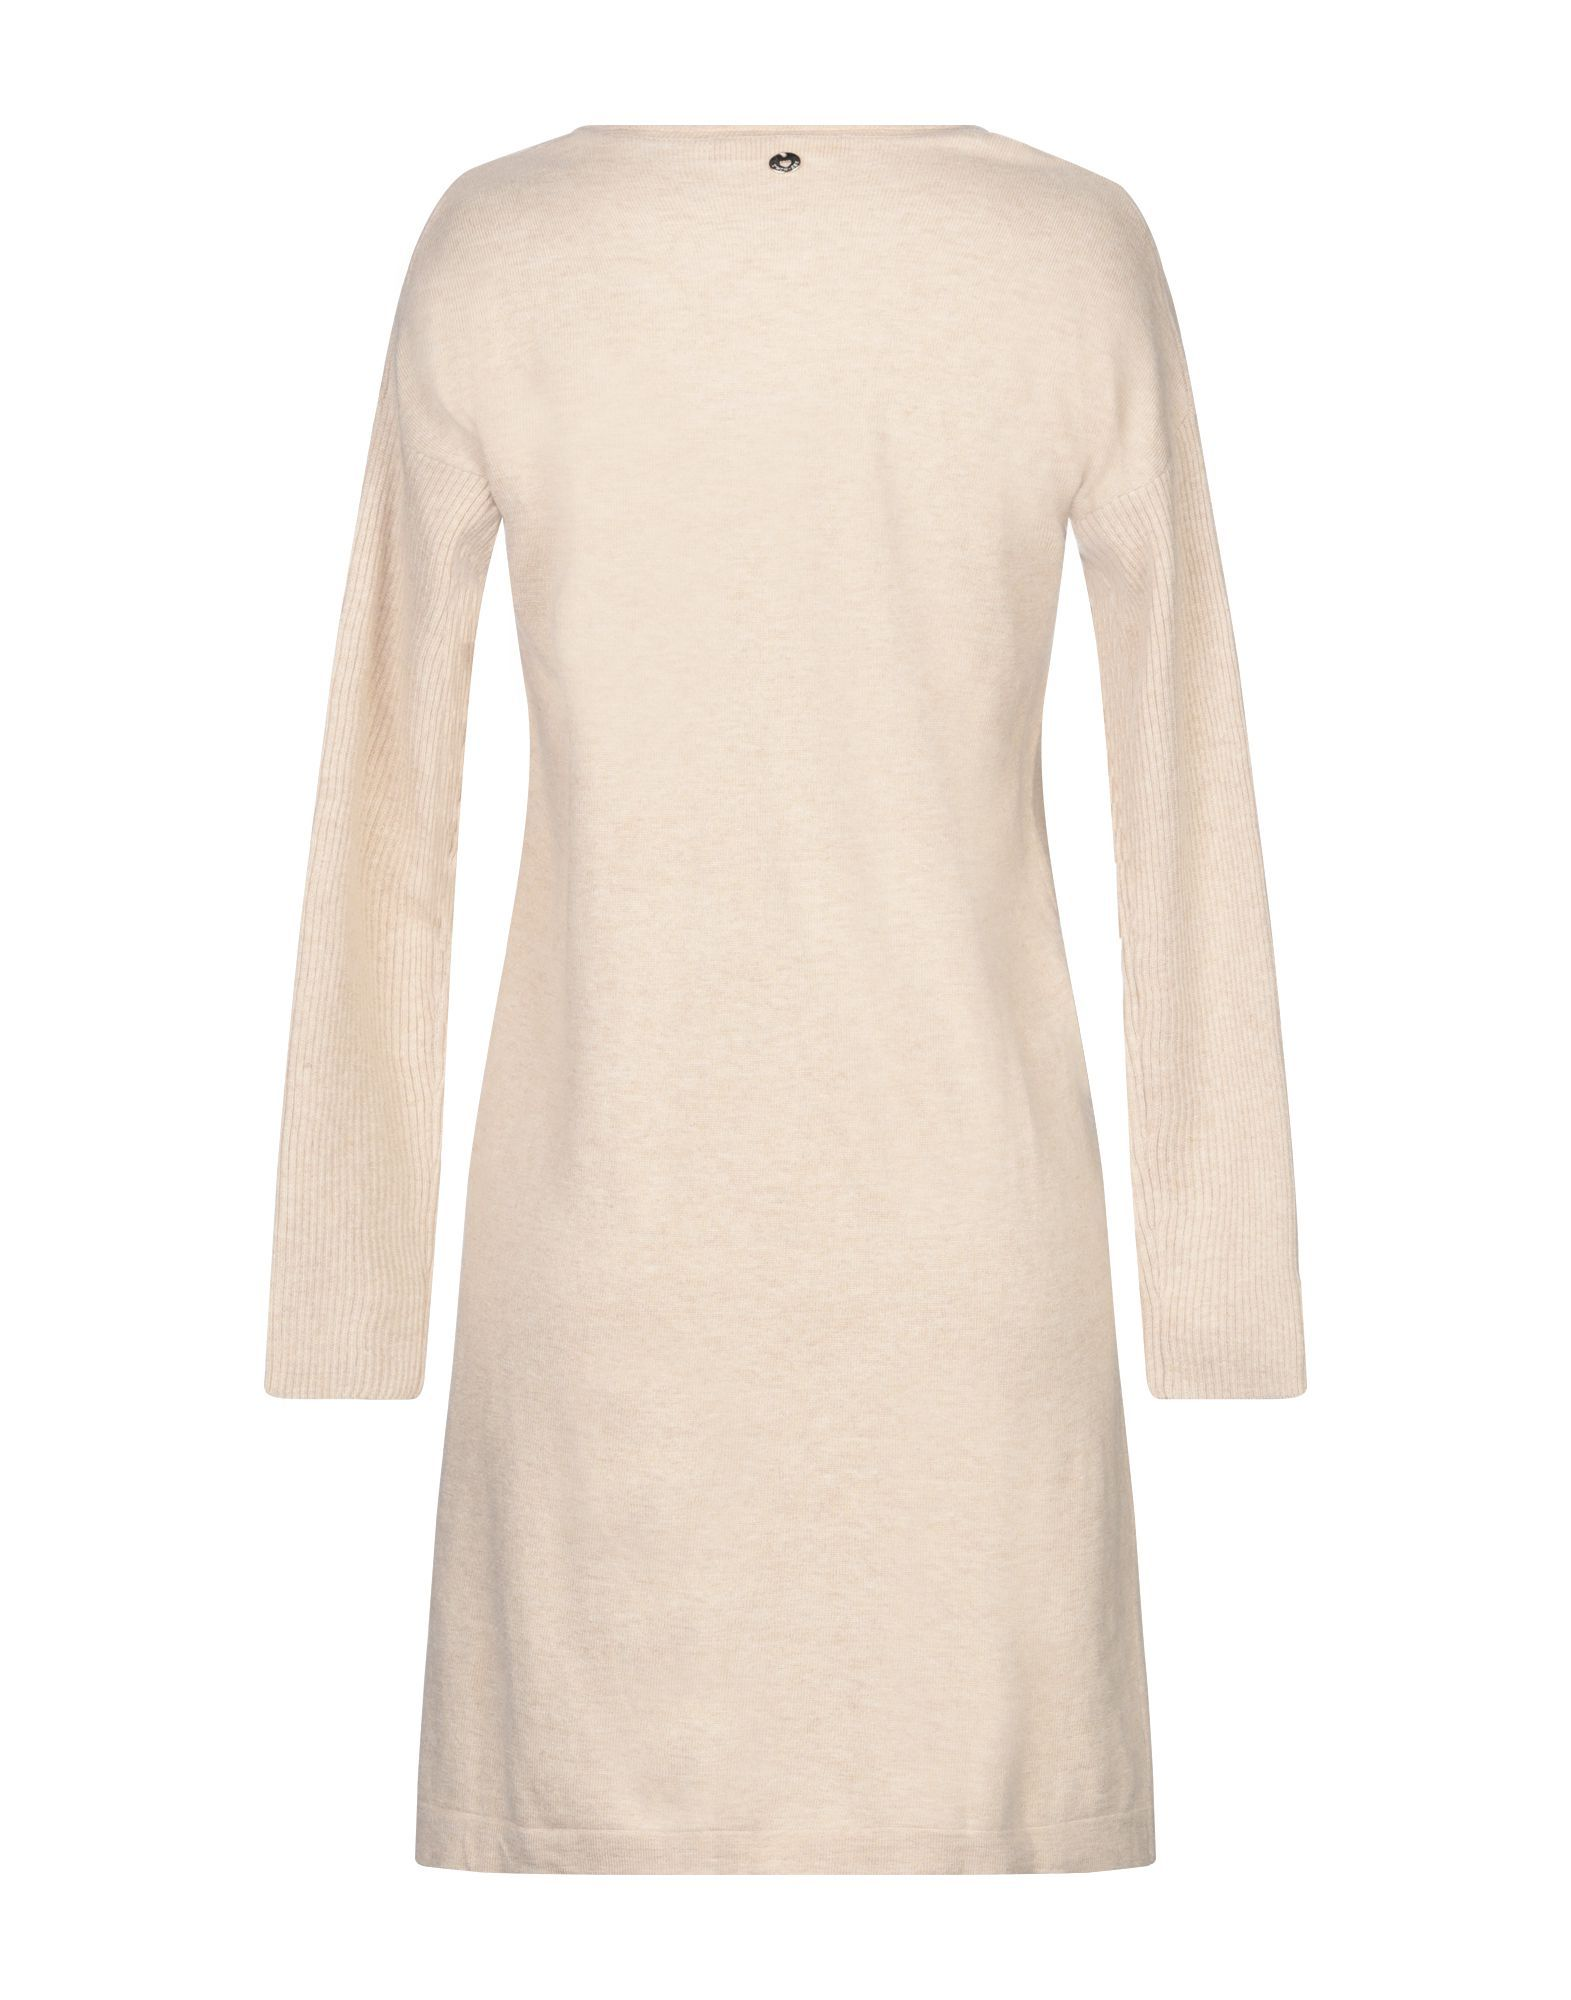 Twinset Underwear Beige Knit Long Sleeve Dress